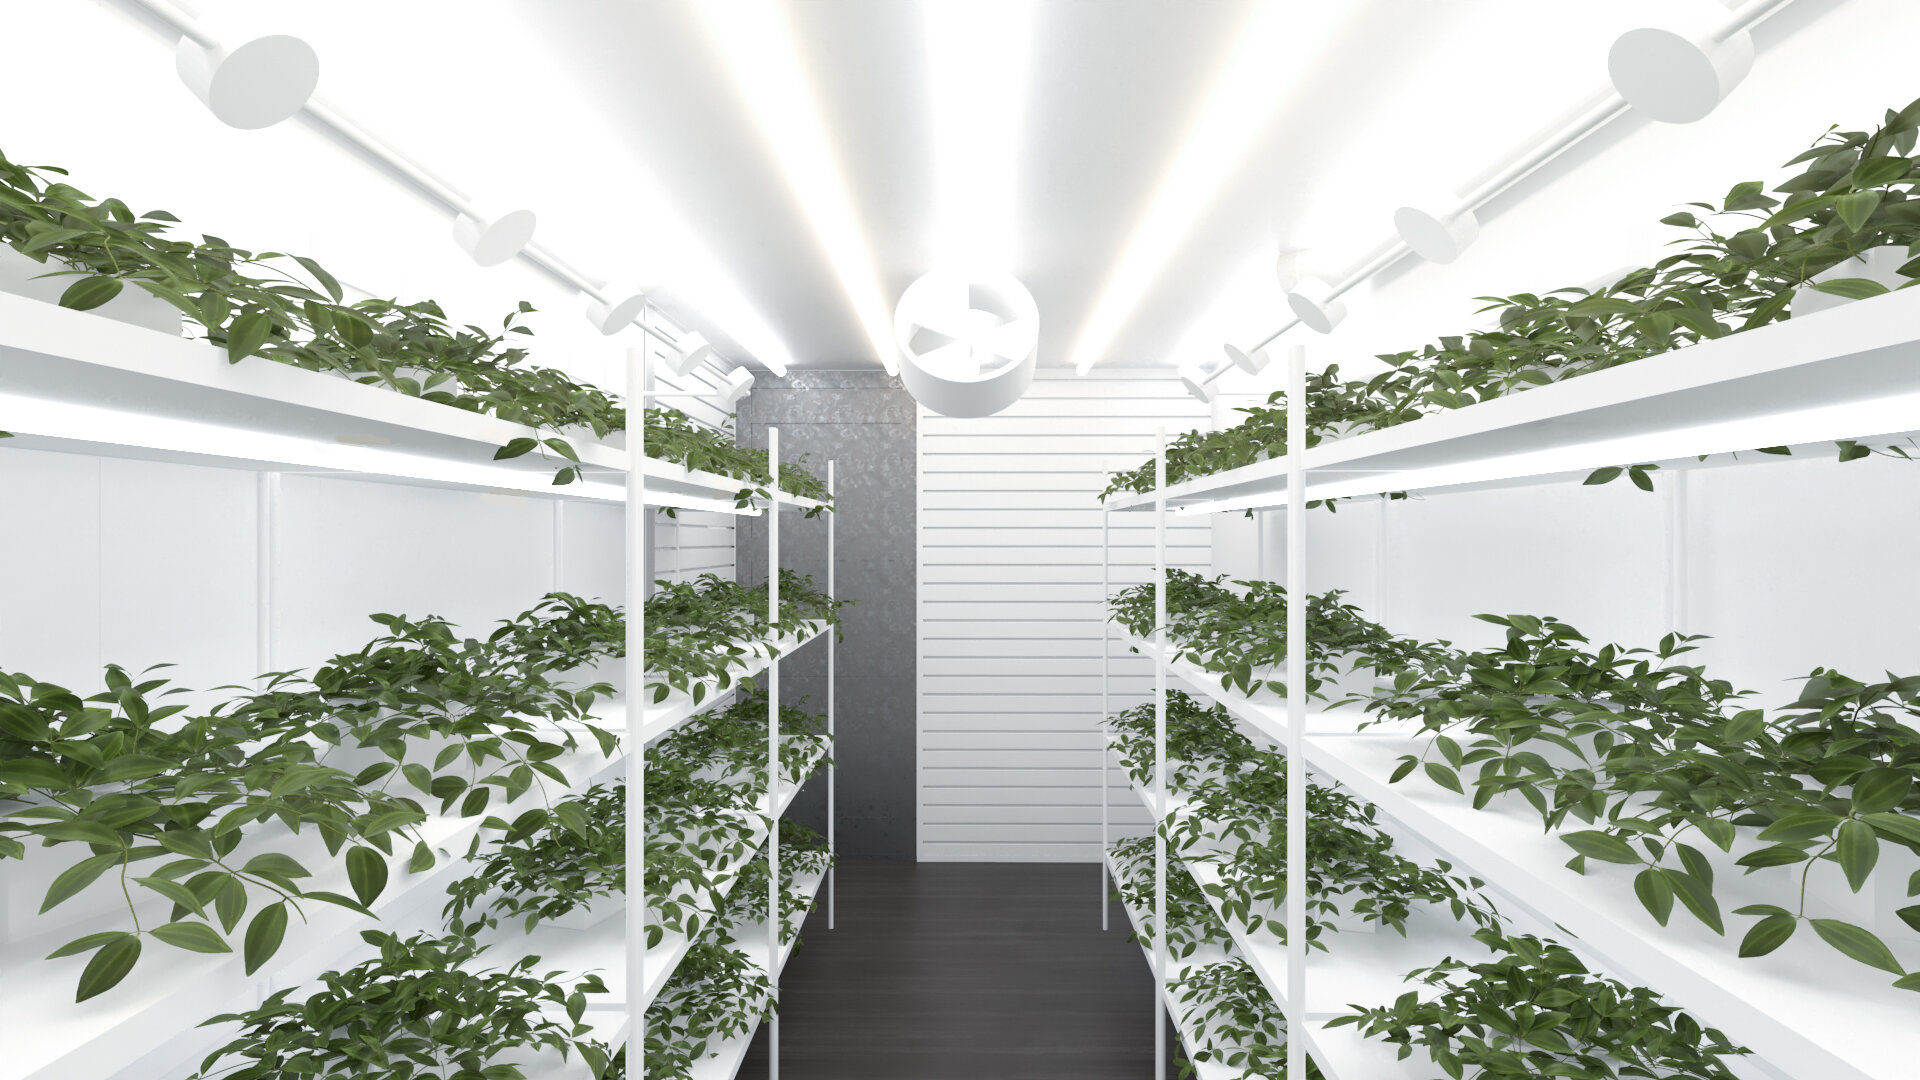 Grow Container View 2 Edit (1).jpg